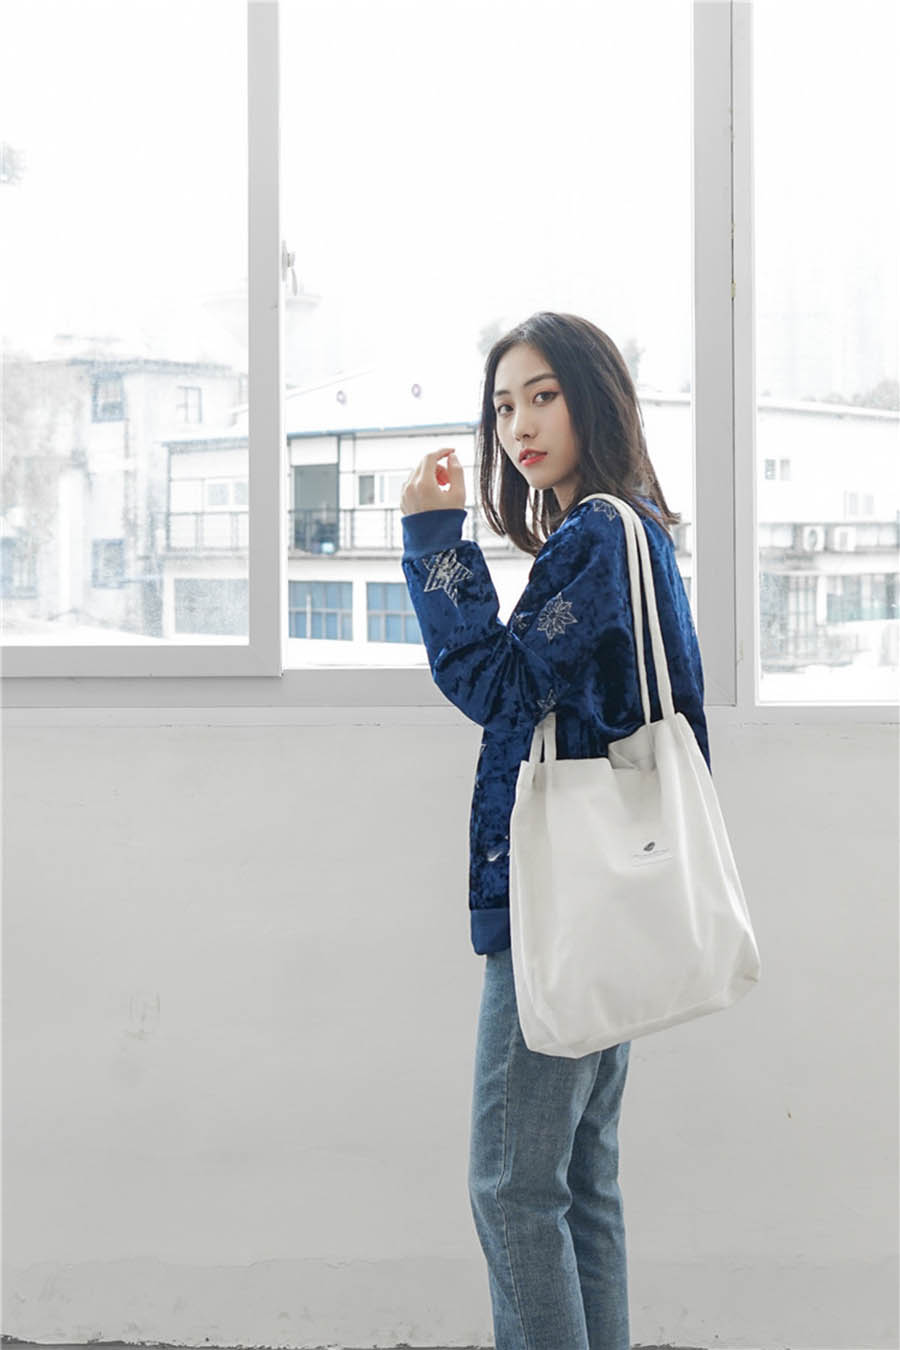 Mara's Dream High Capacity Women Corduroy Tote Ladies Casual Solid Color Shoulder Bag Foldable Reusable Women Shopping Beach Bag 6